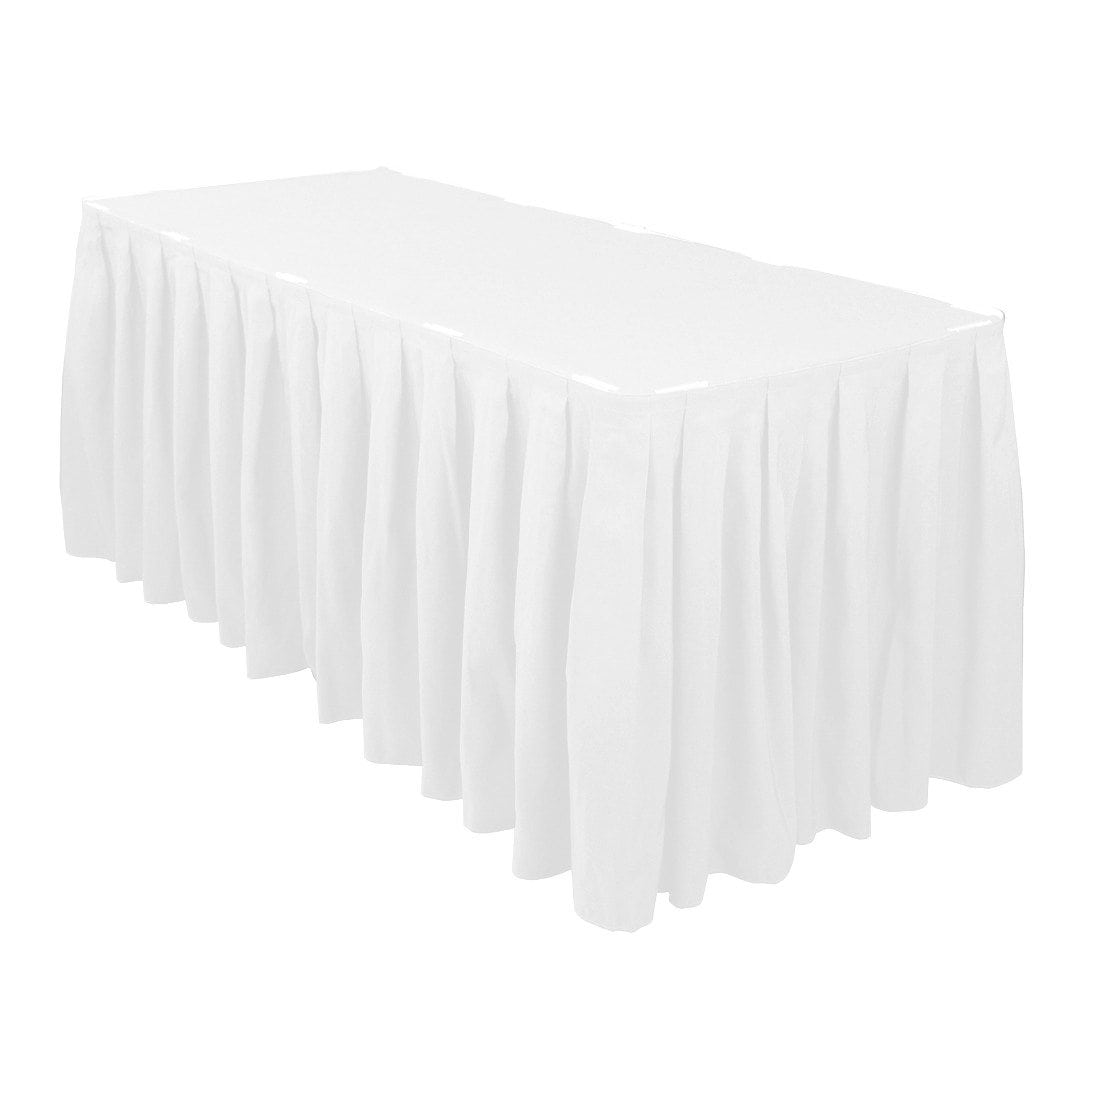 white table skirt 14′ poly 30 in height